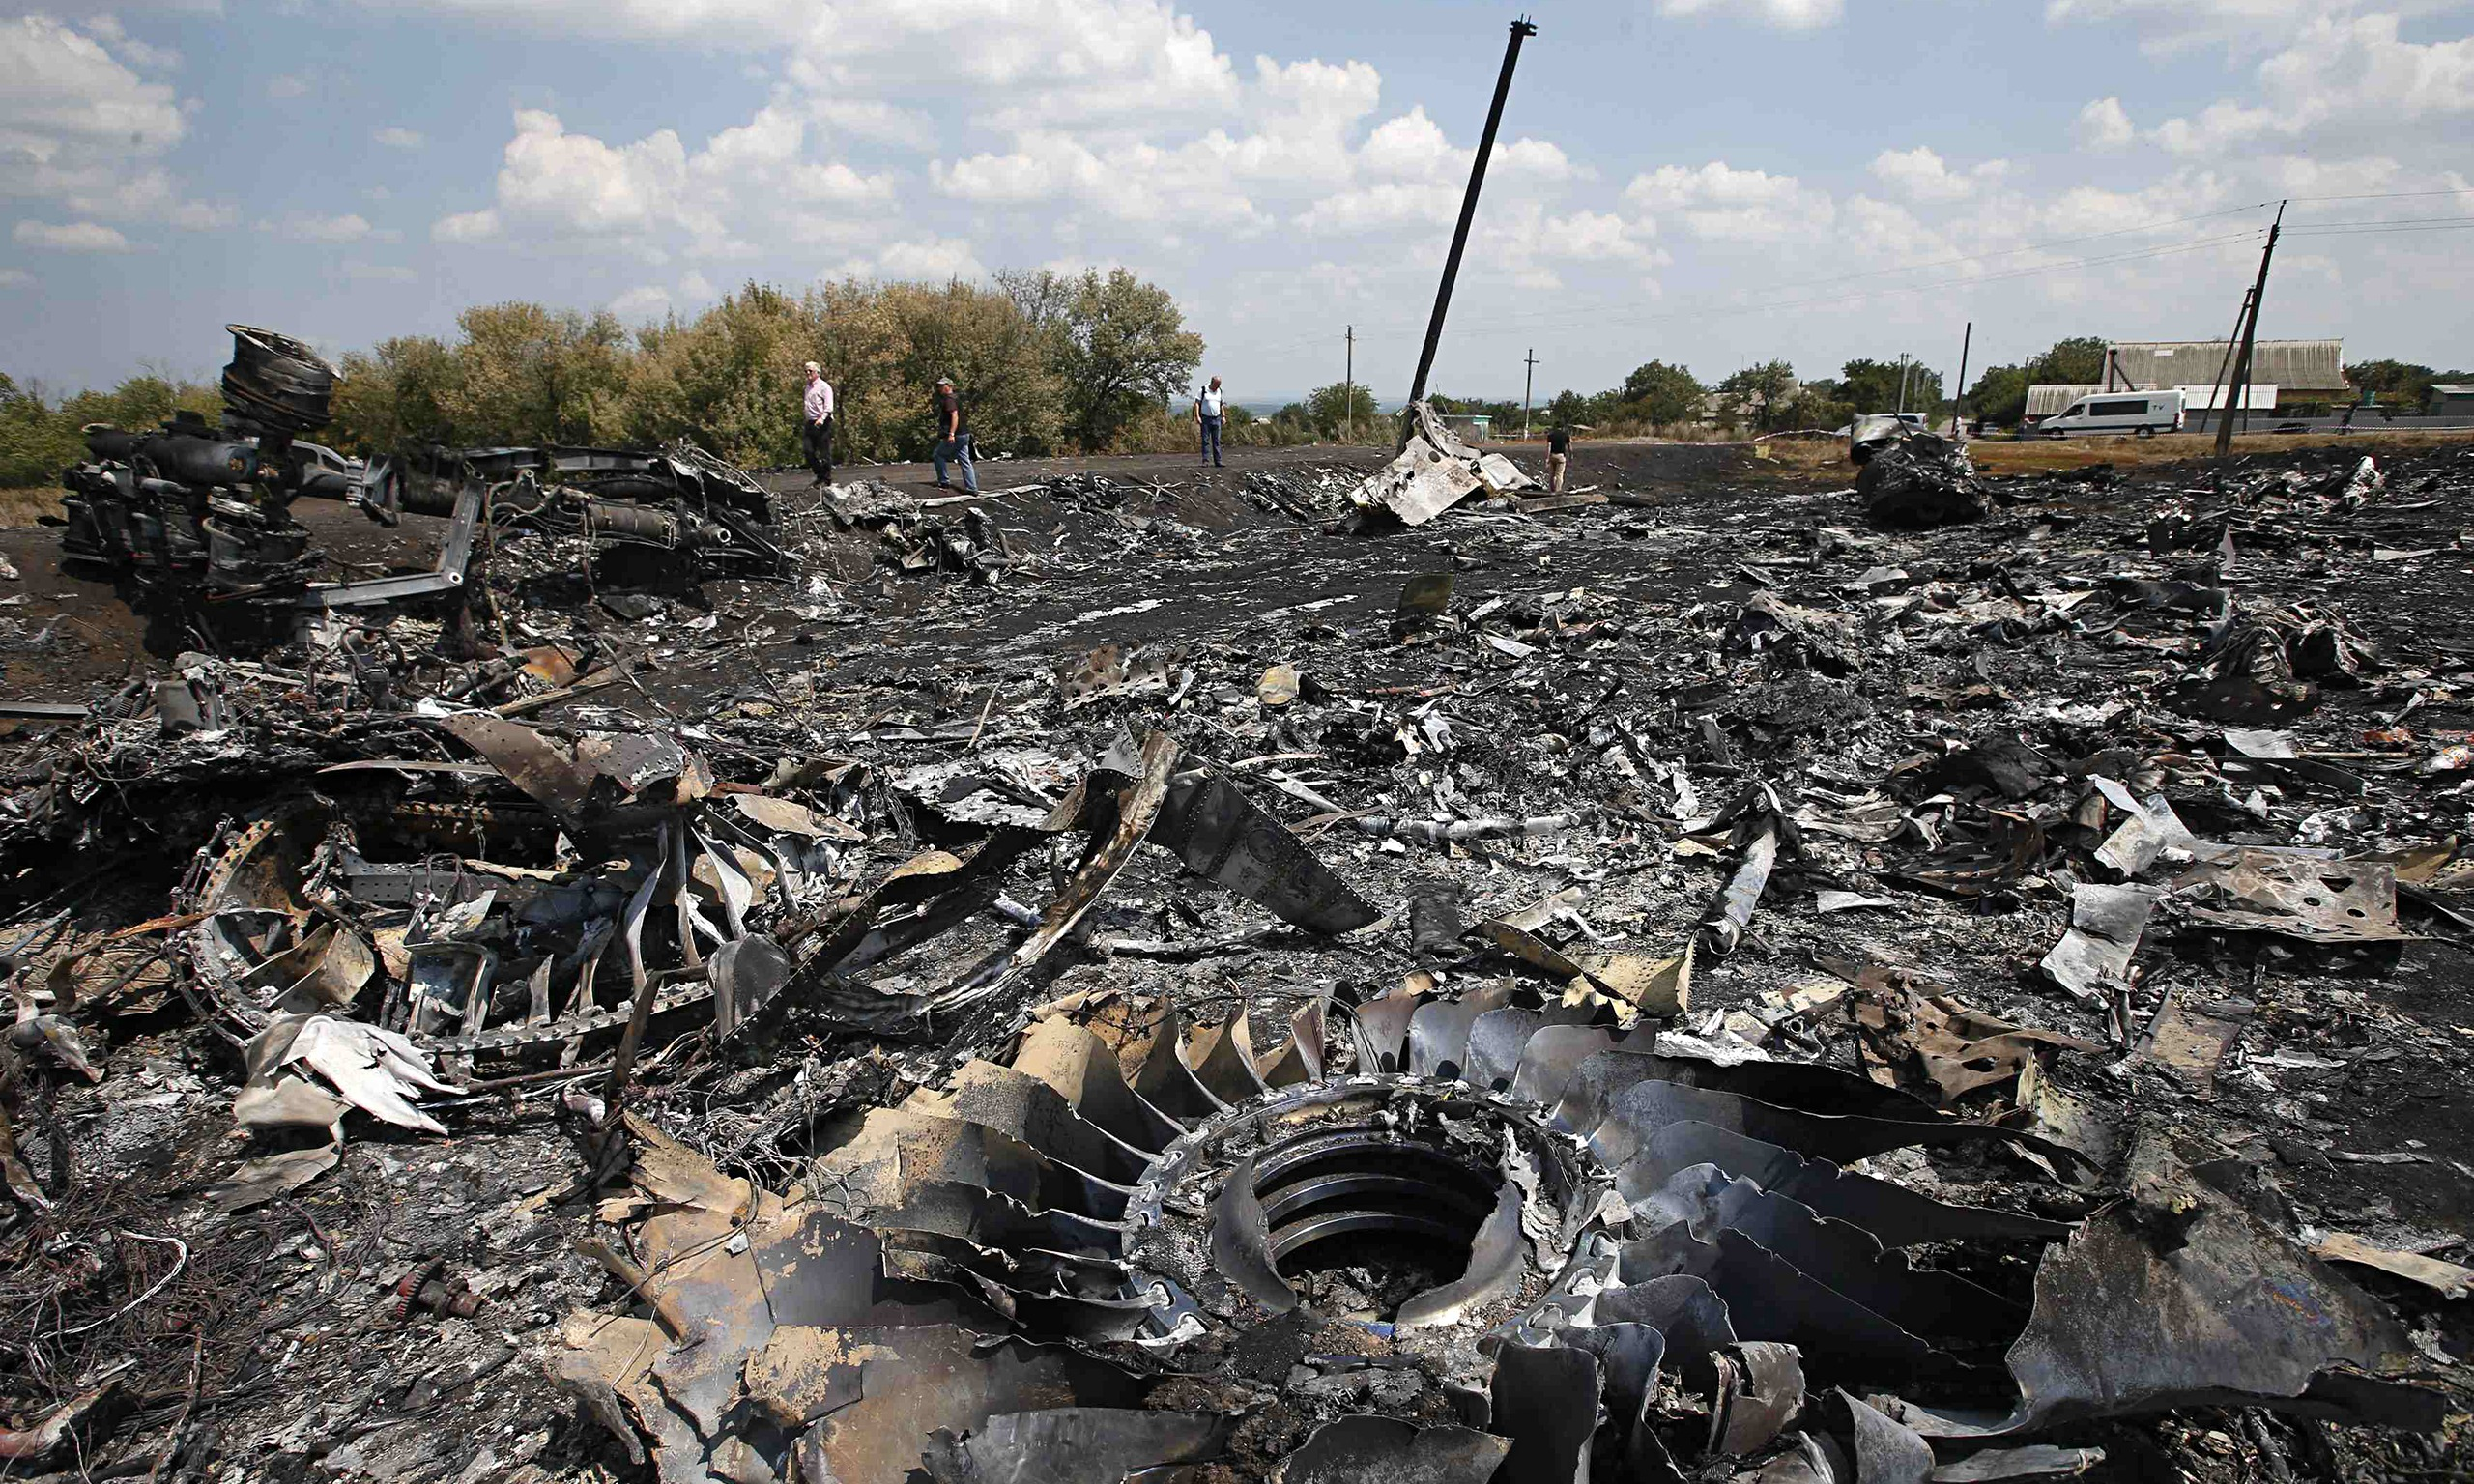 https://static-secure.guim.co.uk/sys-images/Guardian/Pix/pictures/2014/7/23/1406120588459/MH17-wreckage-014.jpg